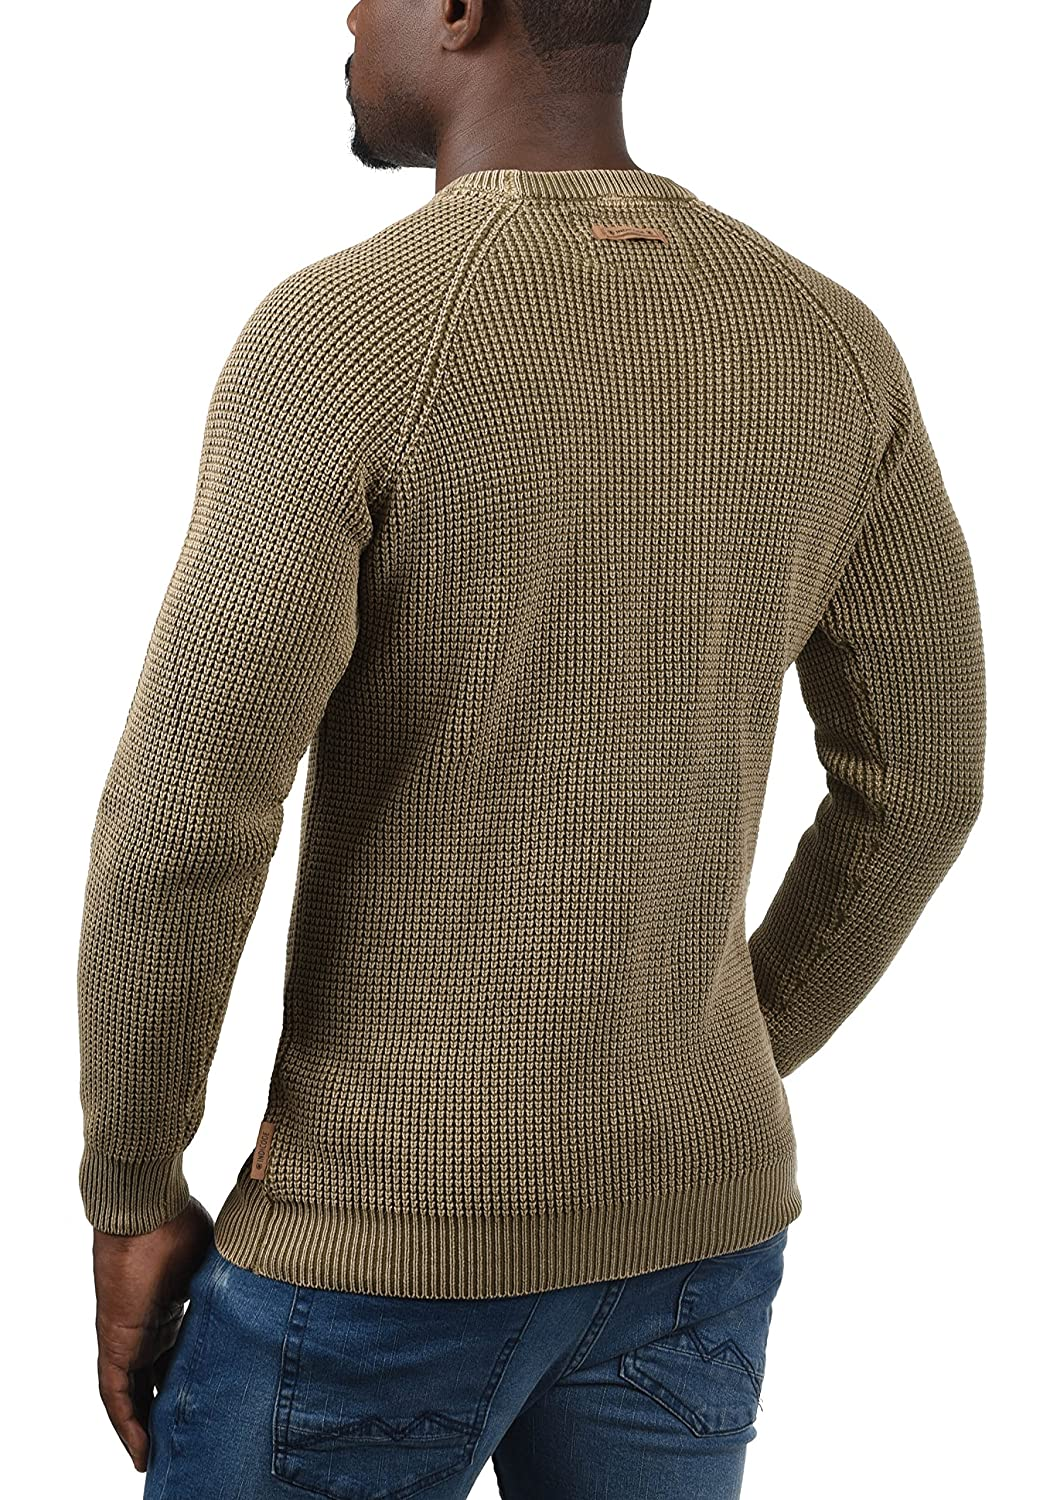 INDICODE Rockford Mens Jumper Chunky Knit Pullover With Crew Neck Made Of 100/% Cotton